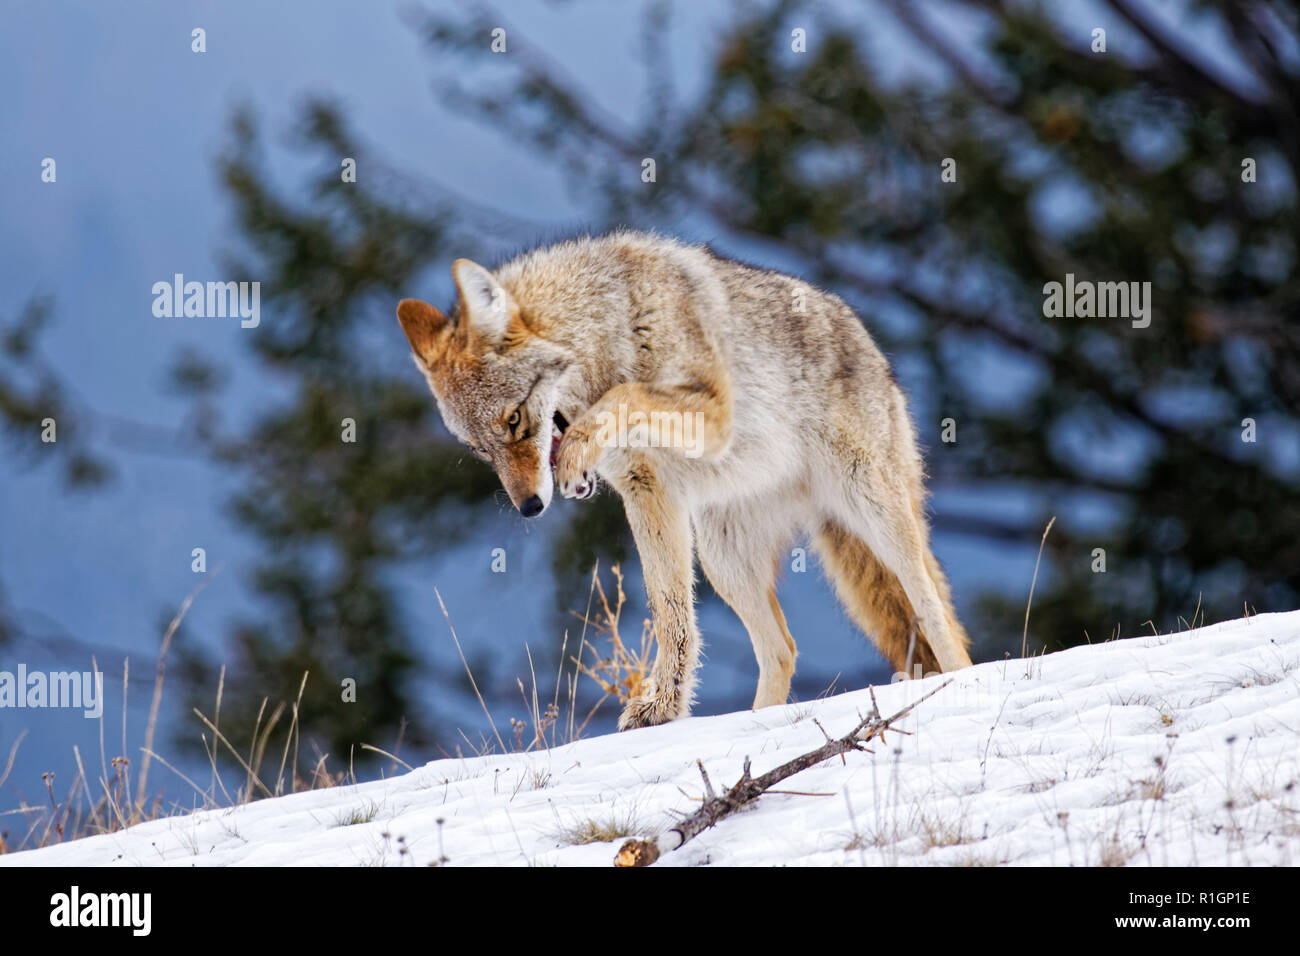 42,757.09724 Close up adult Coyote standing pawing at mouth to dislodge caught food caught or soothe injured paw, cold winter snow snowy trees sky in  - Stock Image